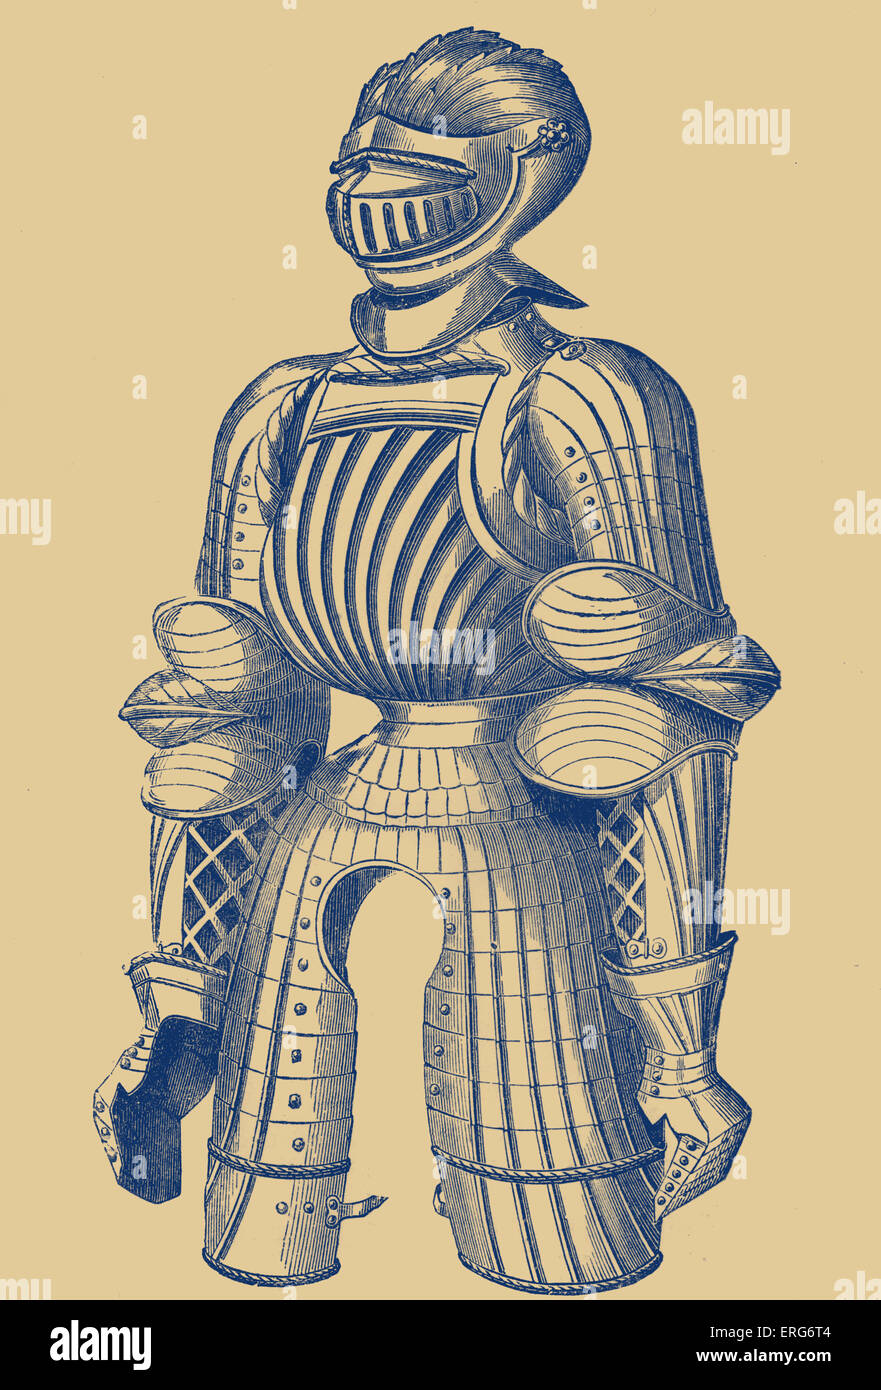 Convex armour of the fifteenth century, said to have belonged to Maximilian. Maximilian I of Habsburg, Holy Roman - Stock Image